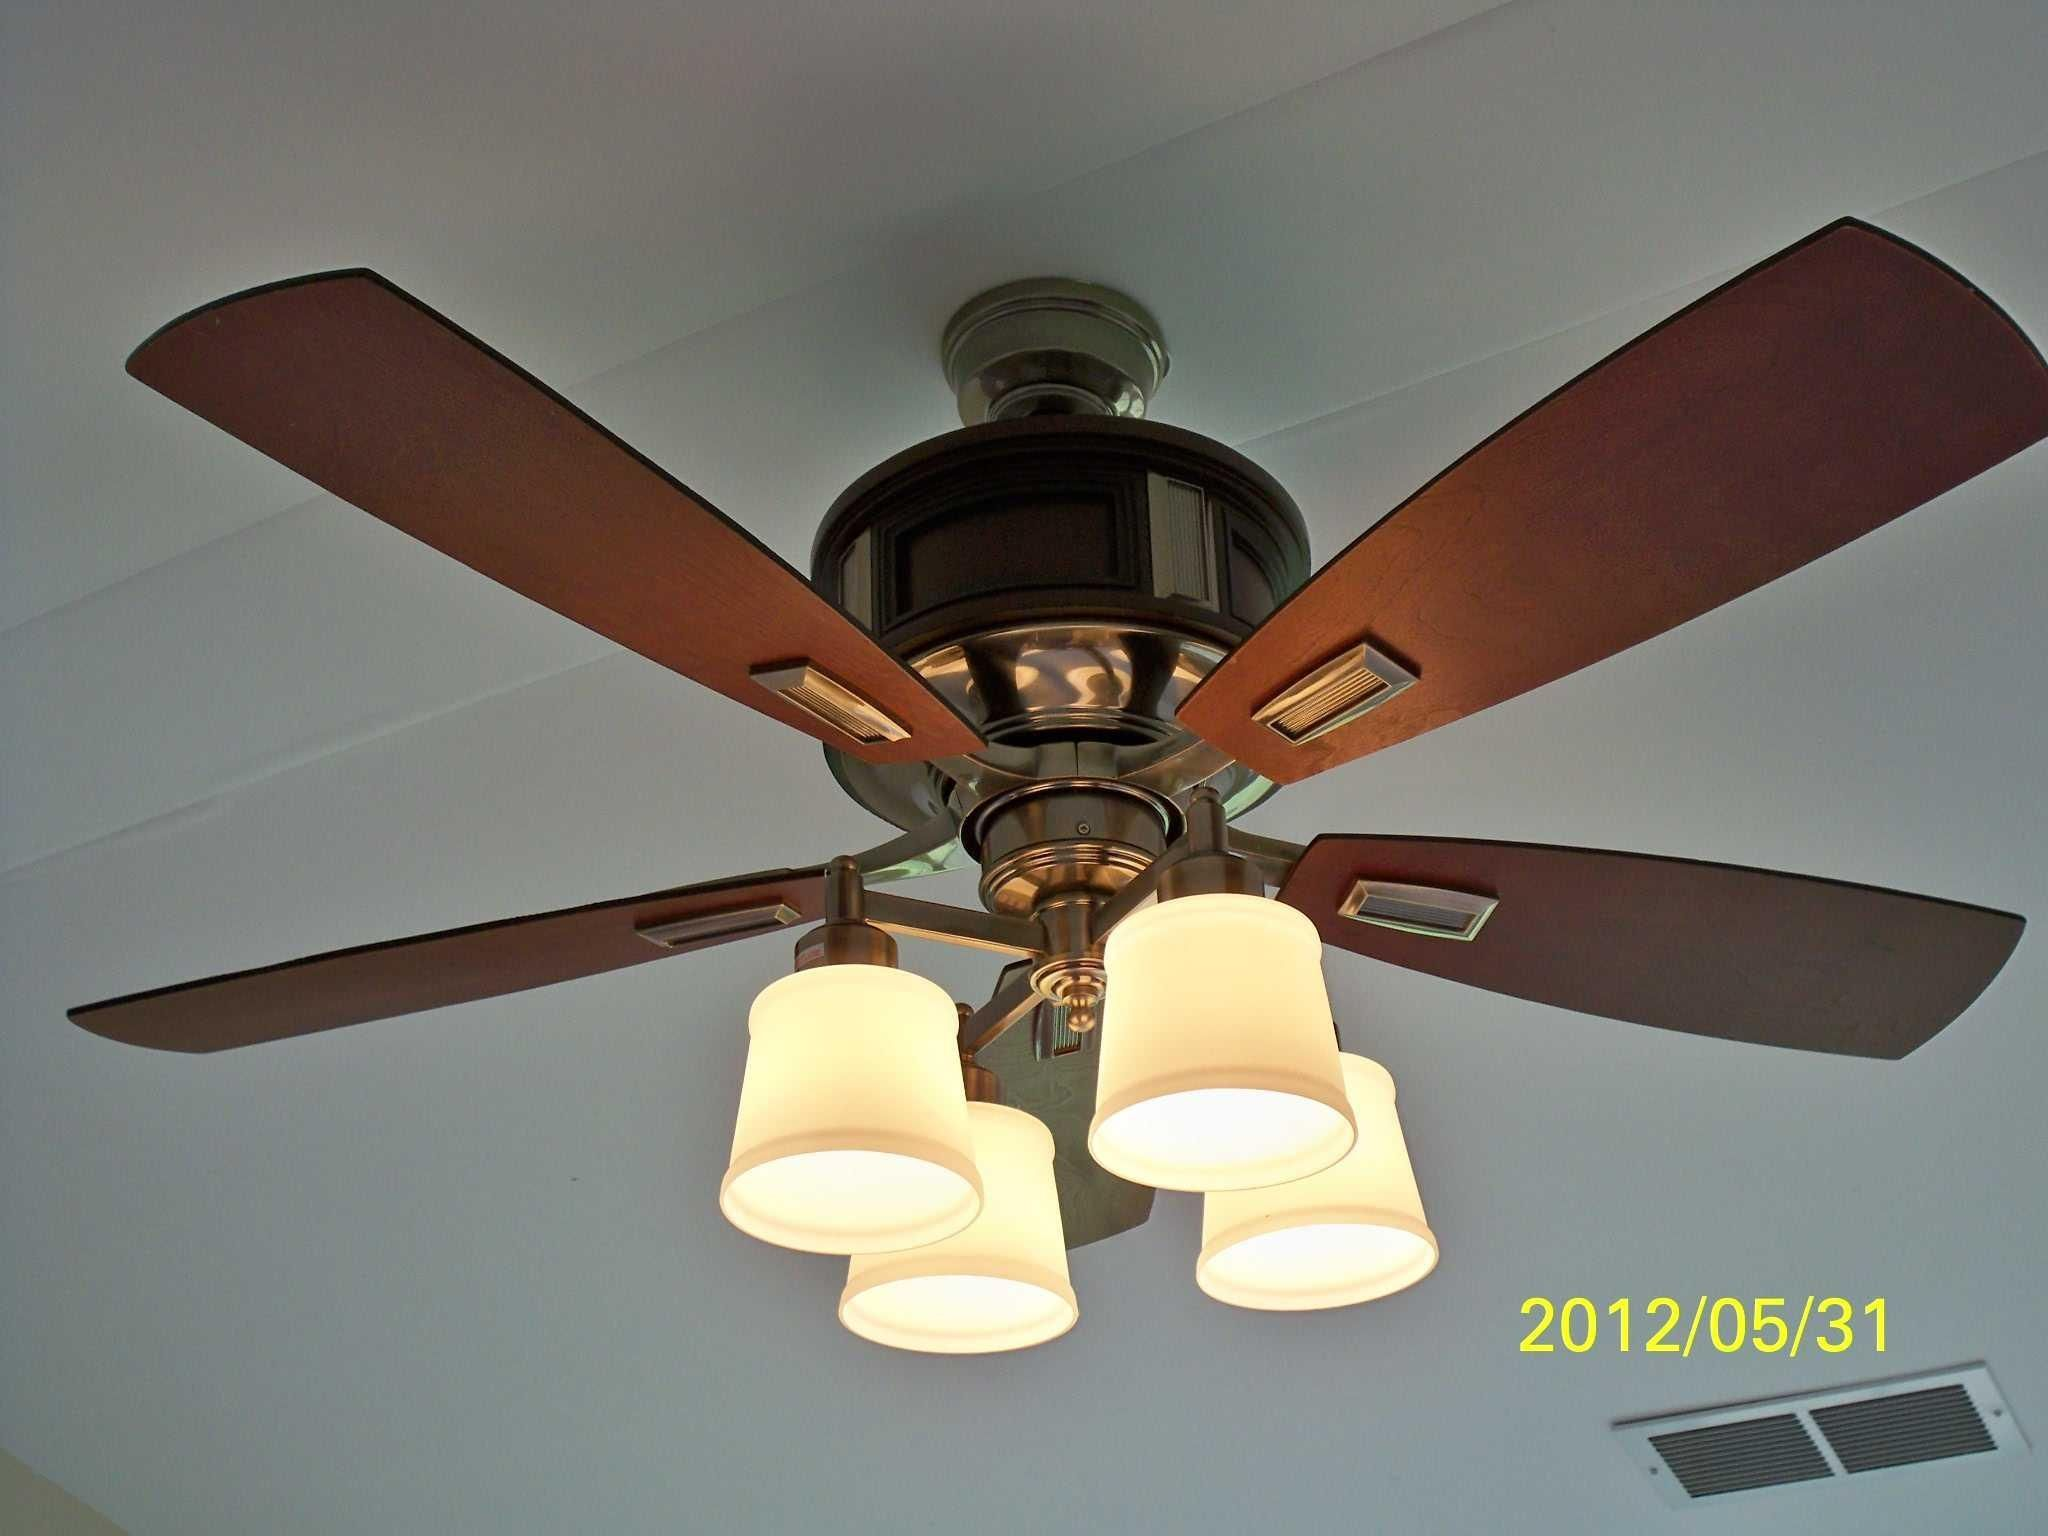 Hampton Bay Ceiling Fan Ac 552